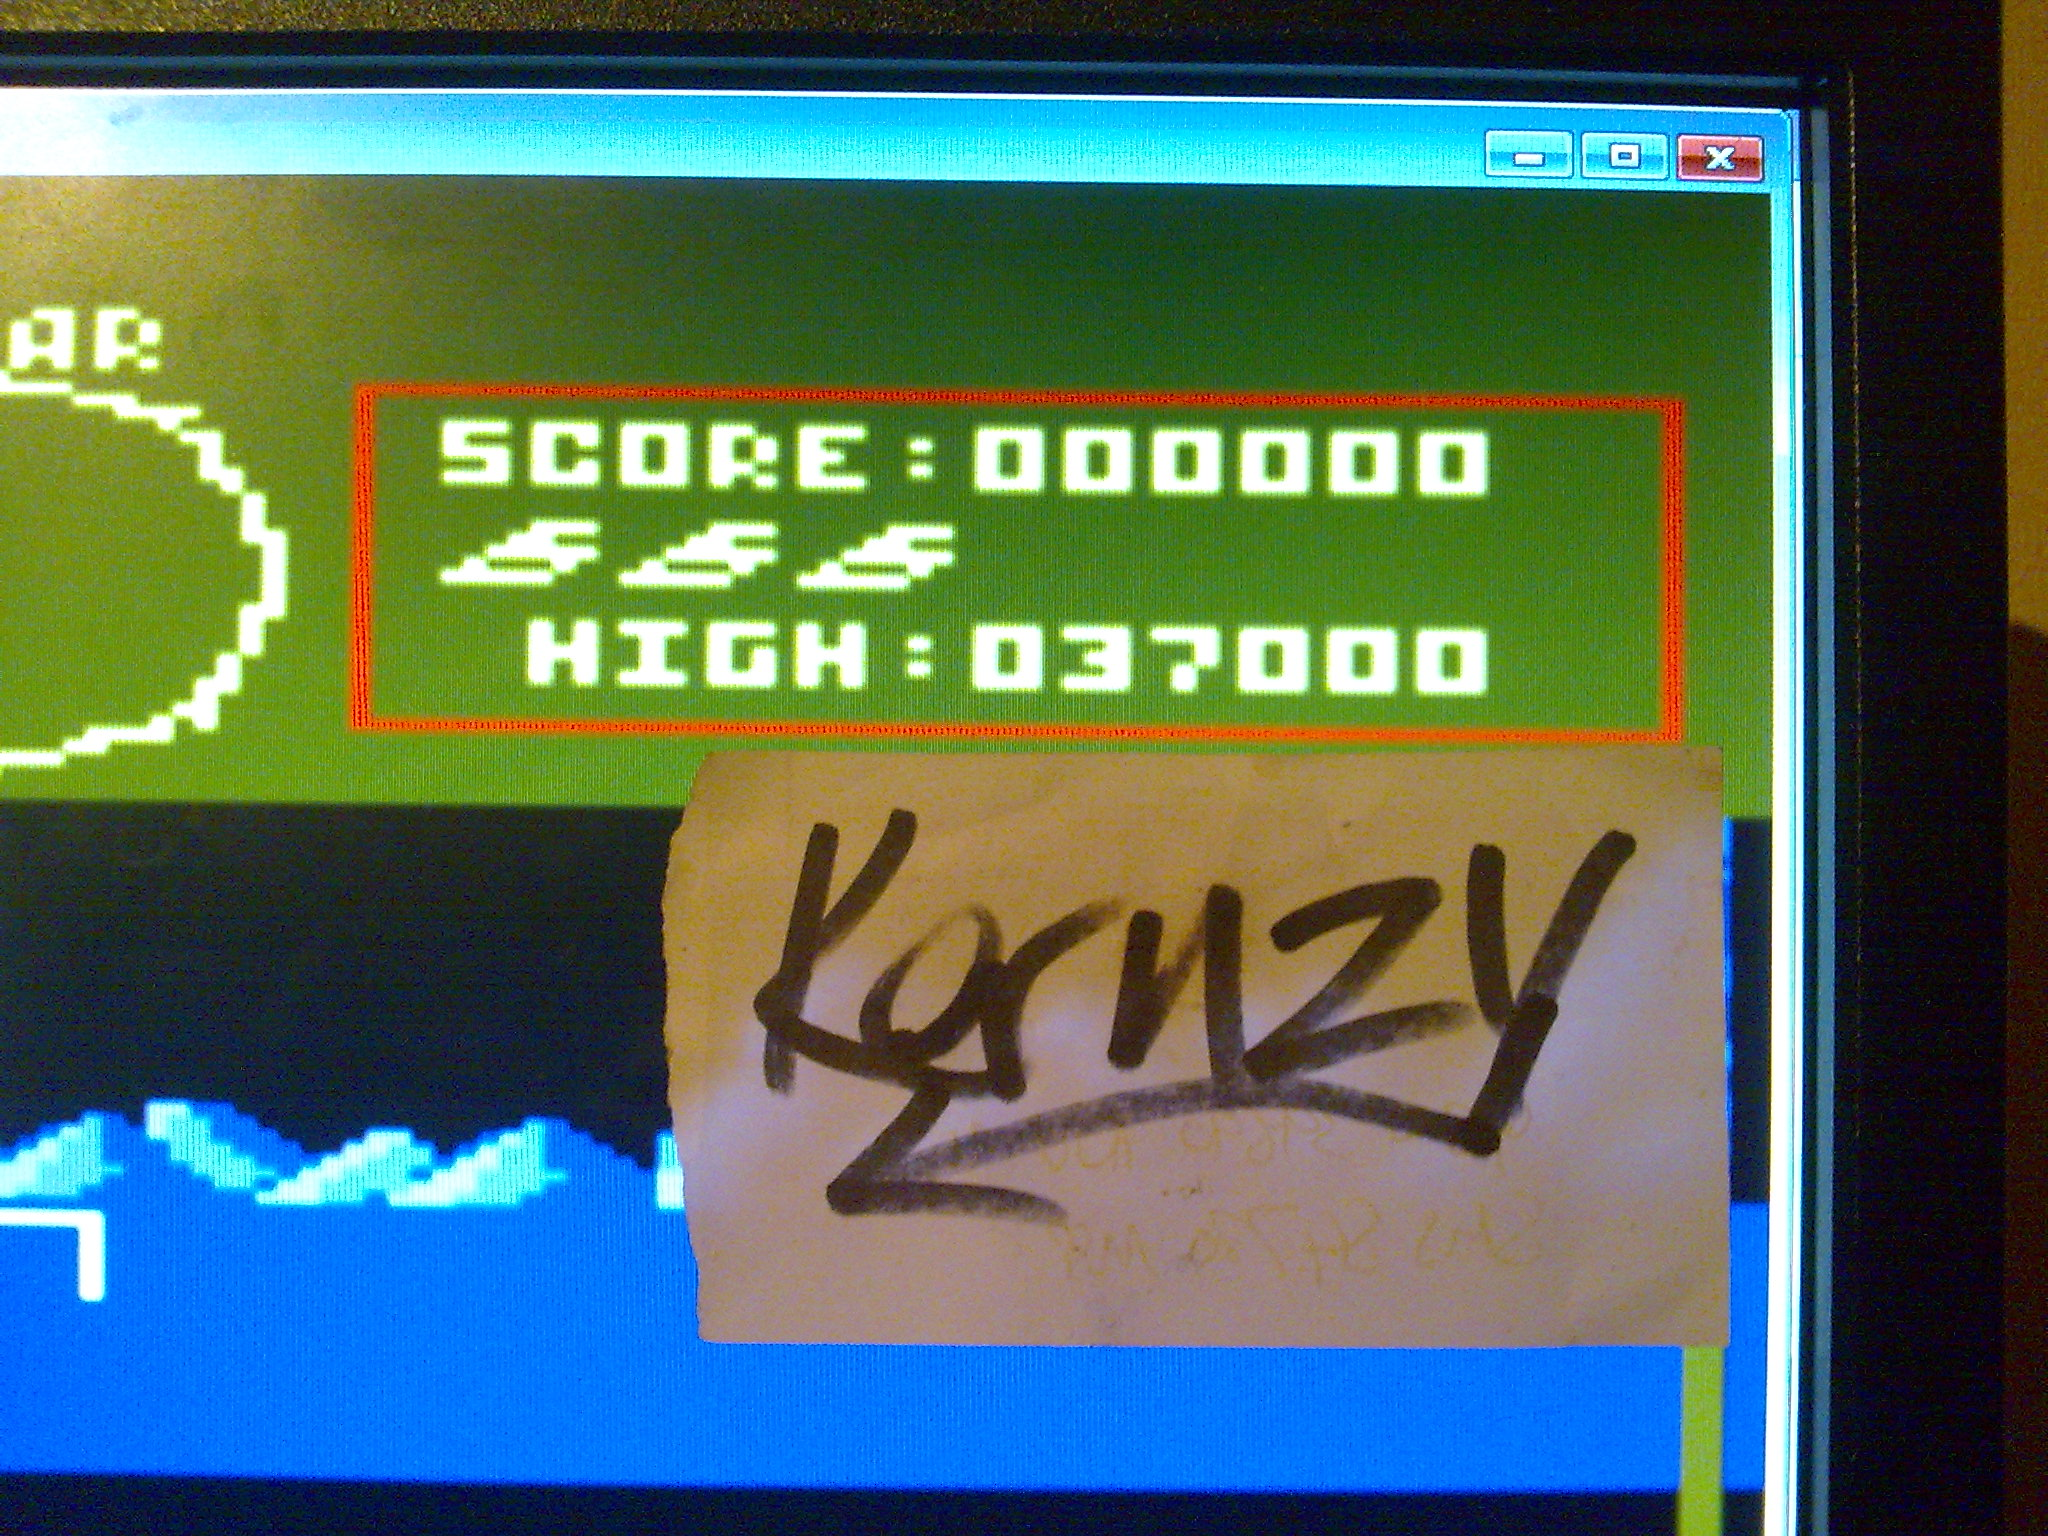 kernzy: Battlezone (Atari 5200 Emulated) 37,000 points on 2014-10-08 11:37:54